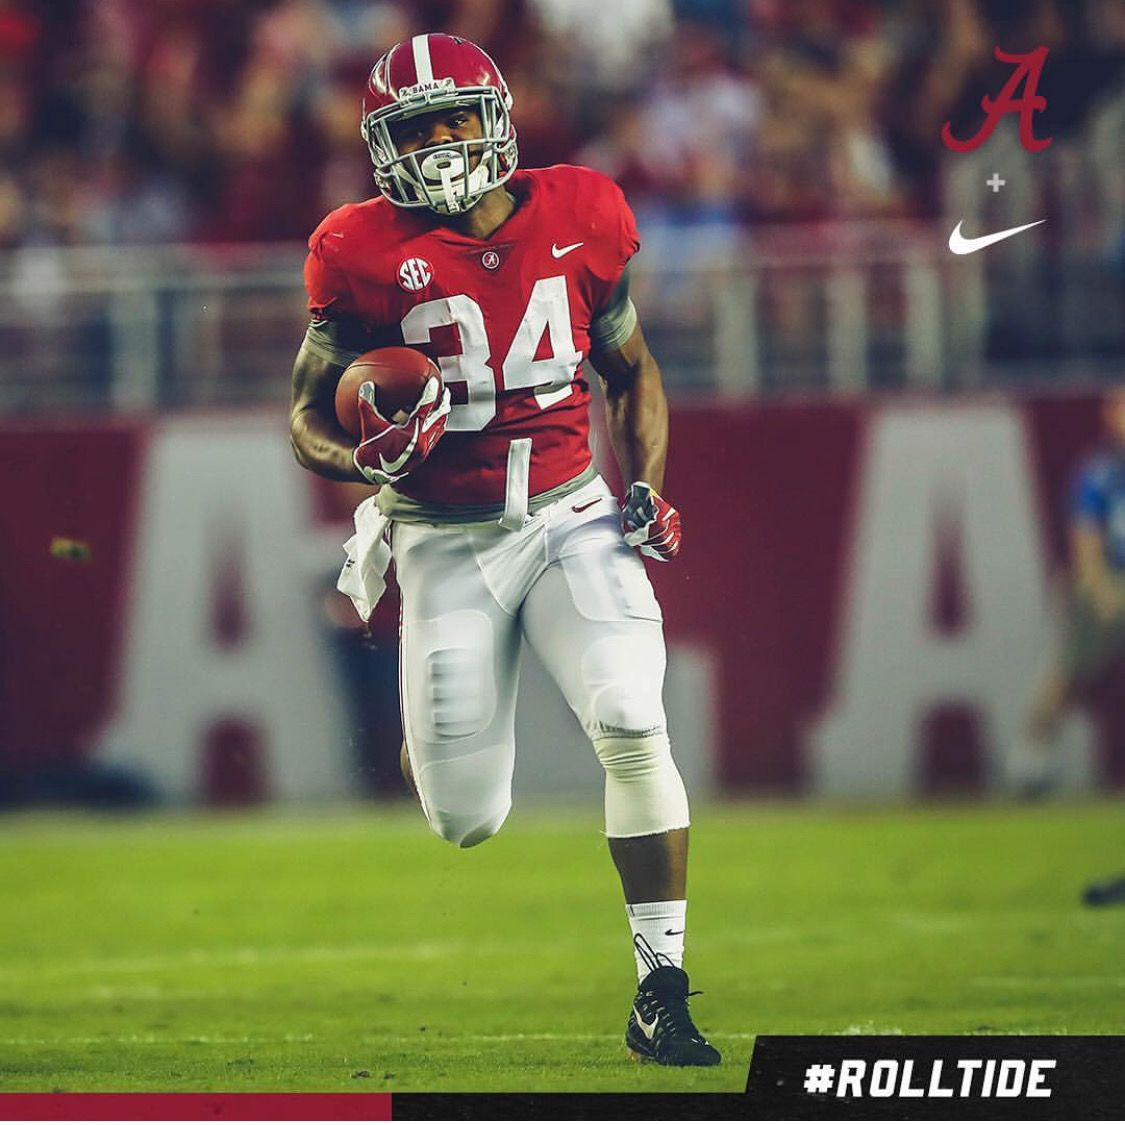 Damien Harris Alabama 41 Arkansas 9 Graphic Via Alabamafbl On Instagram Alabama Rolltide Alabama Crimson Tide Football Bama Football Alabama Crimson Tide